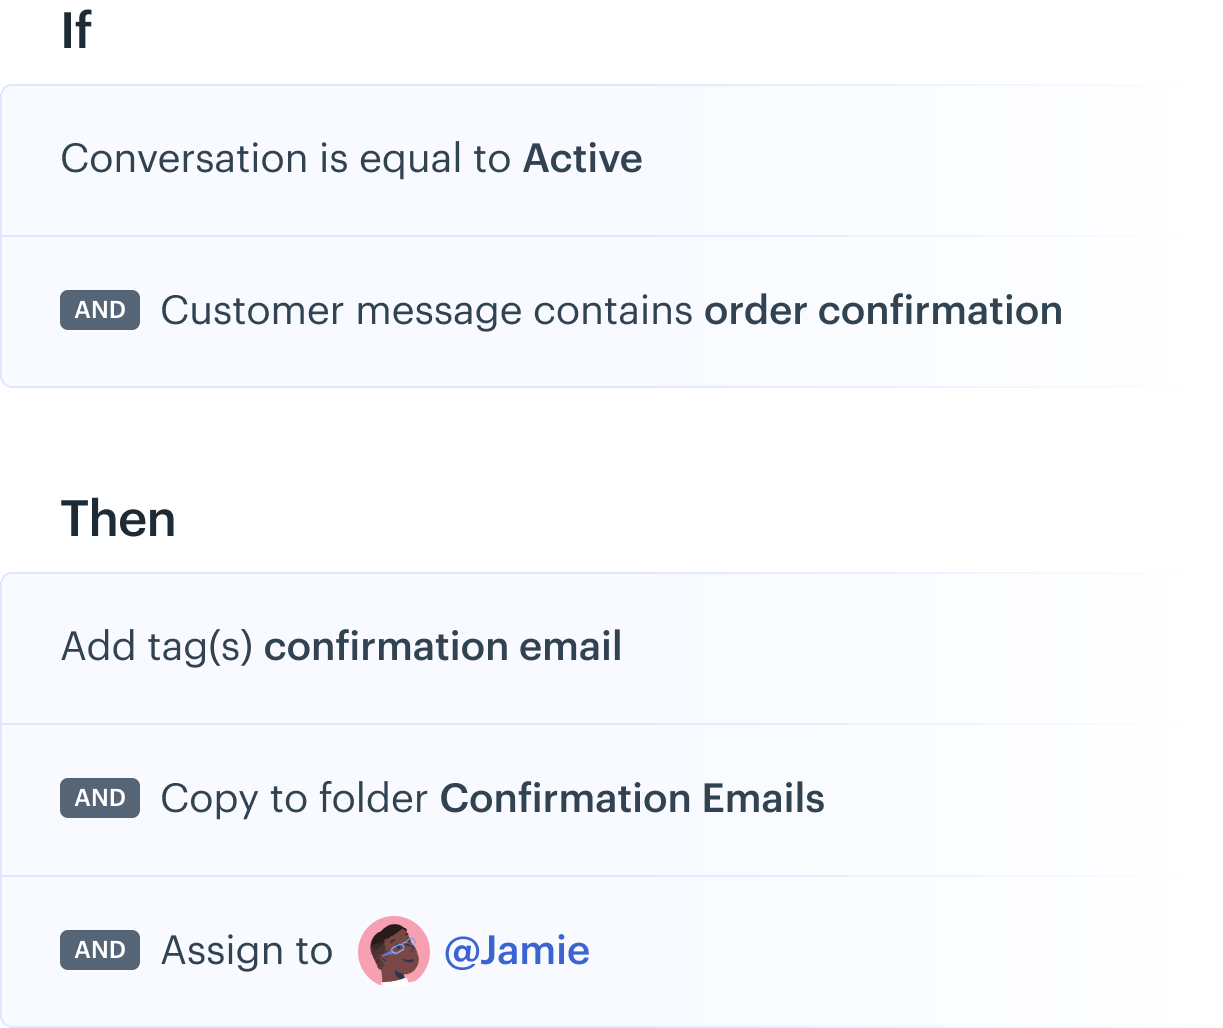 Using blocks to automate sorting email conversations based on content.